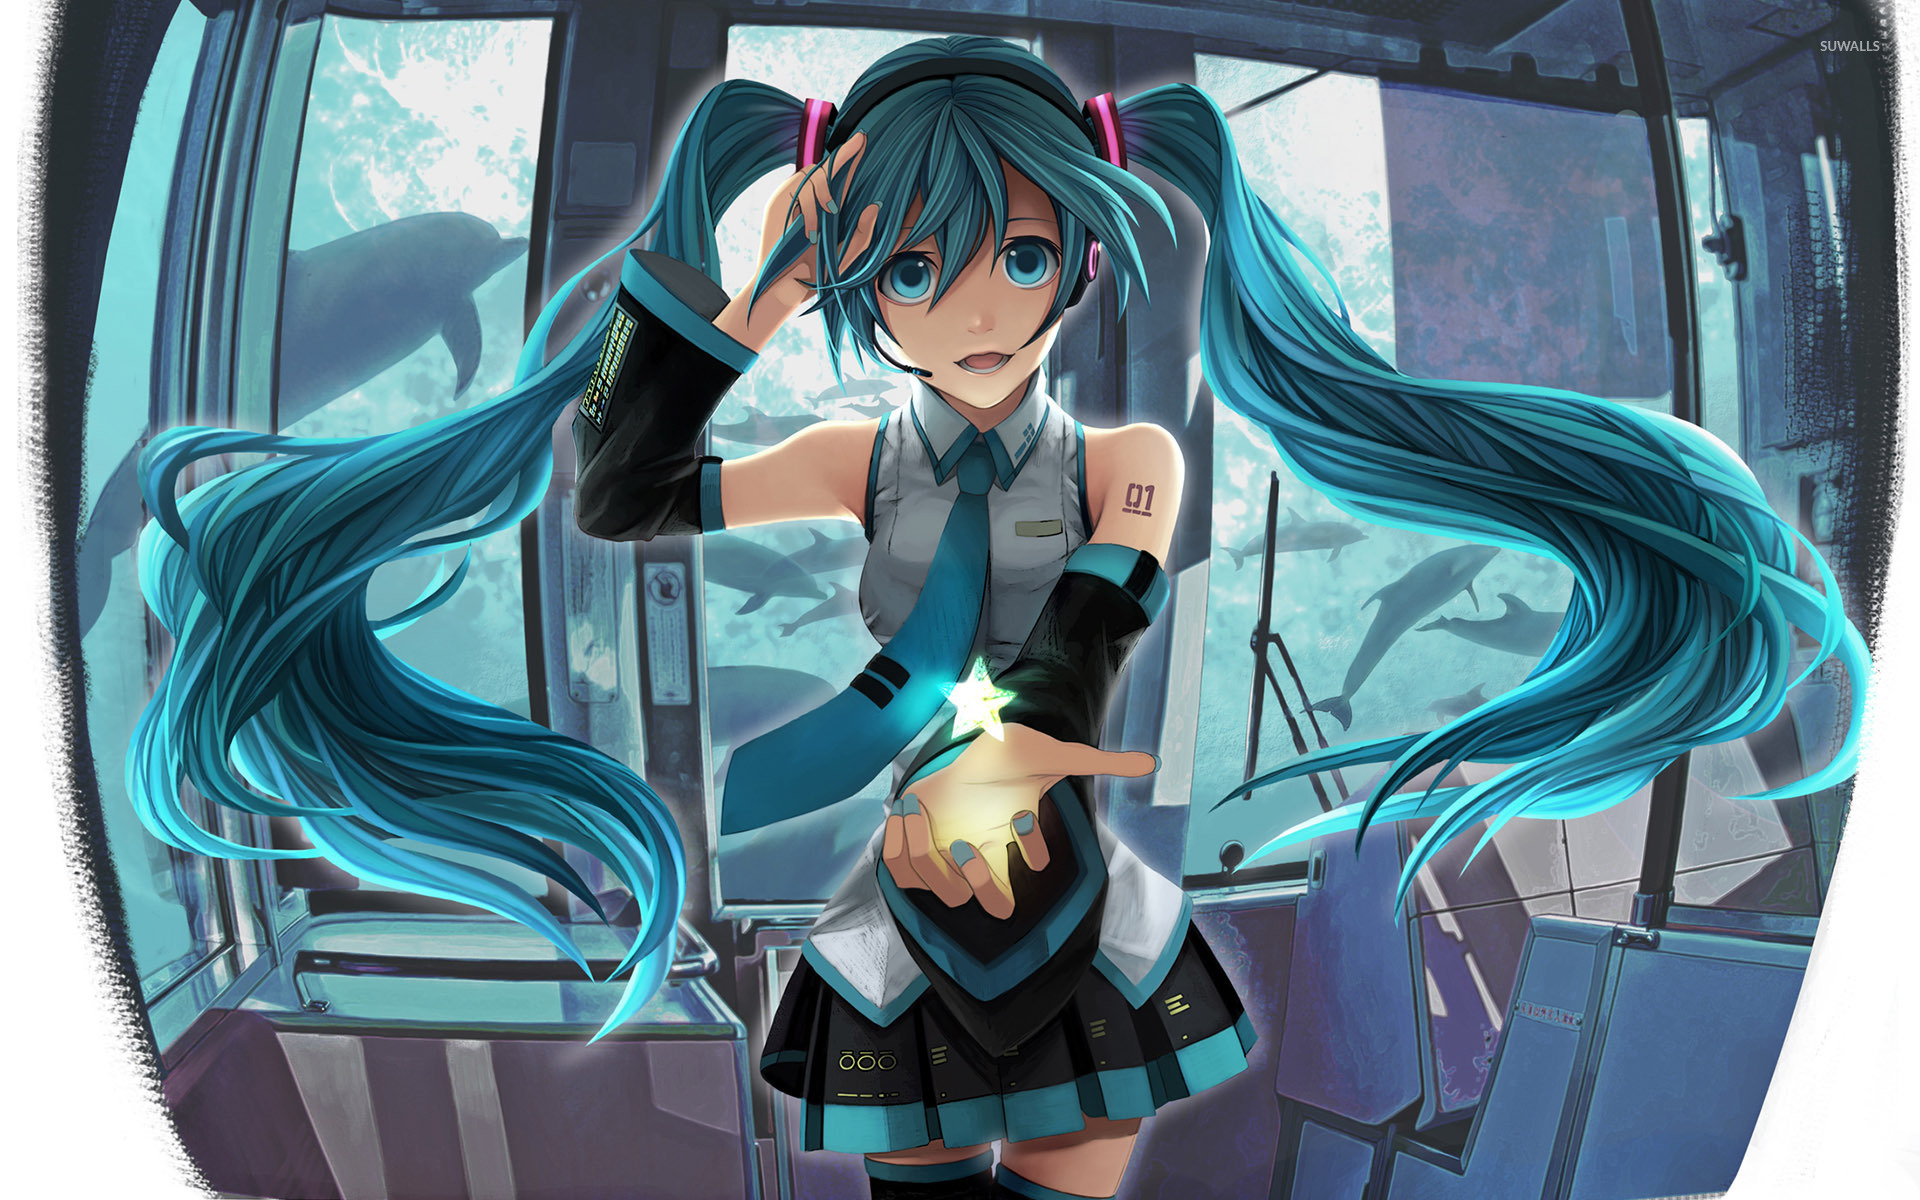 Real Hd Wallpapers 1080p Hatsune Miku Vocaloid 13 Wallpaper Anime Wallpapers